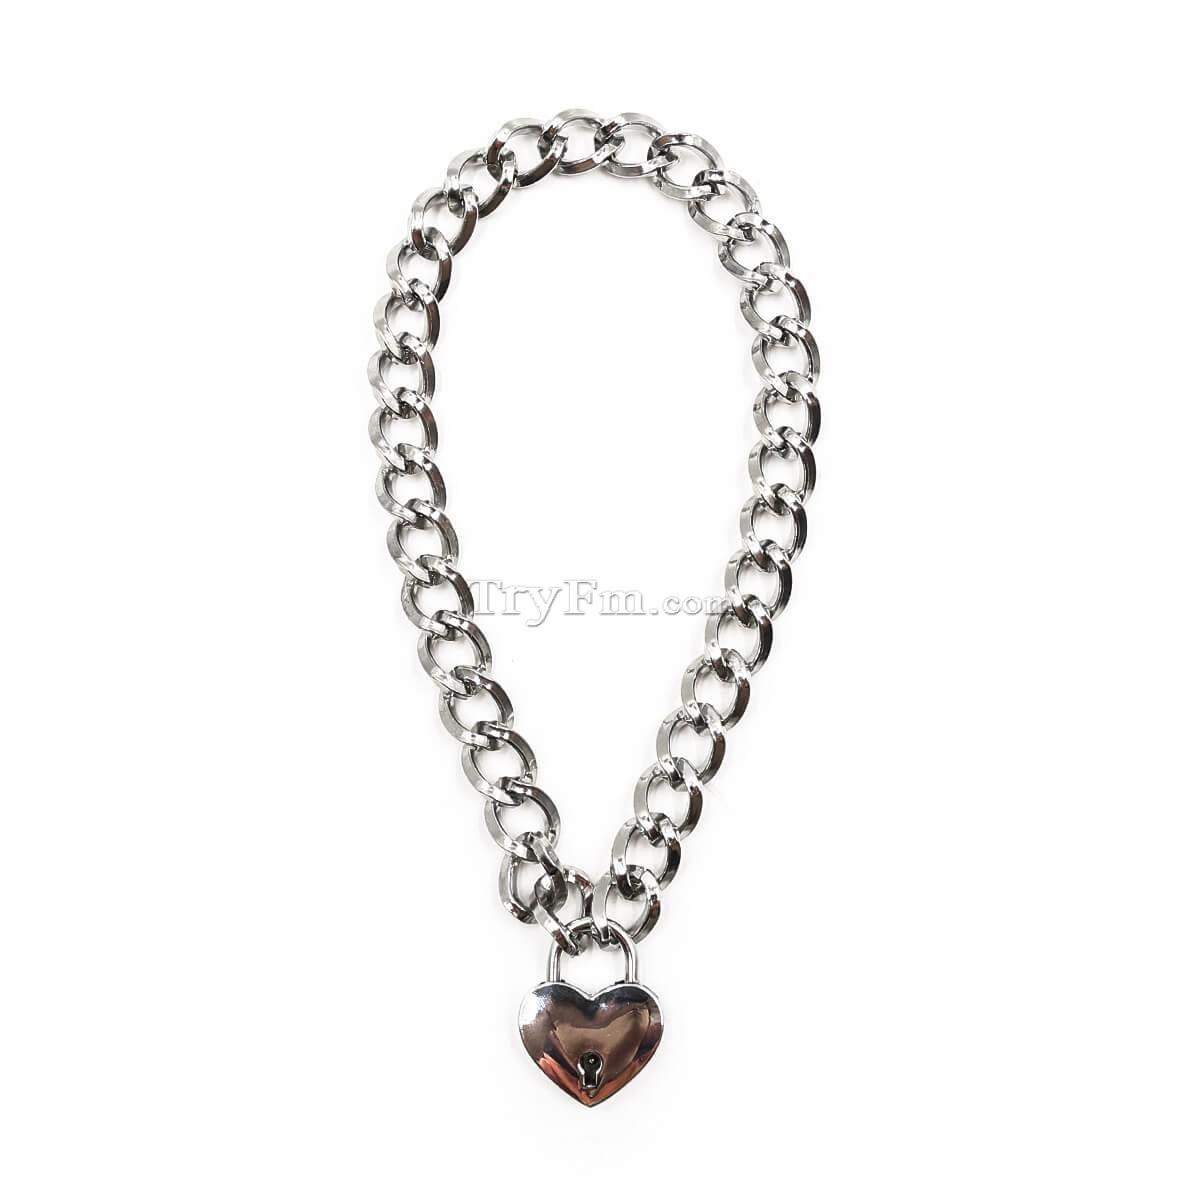 4-silver-chain-lock-collar6.jpg